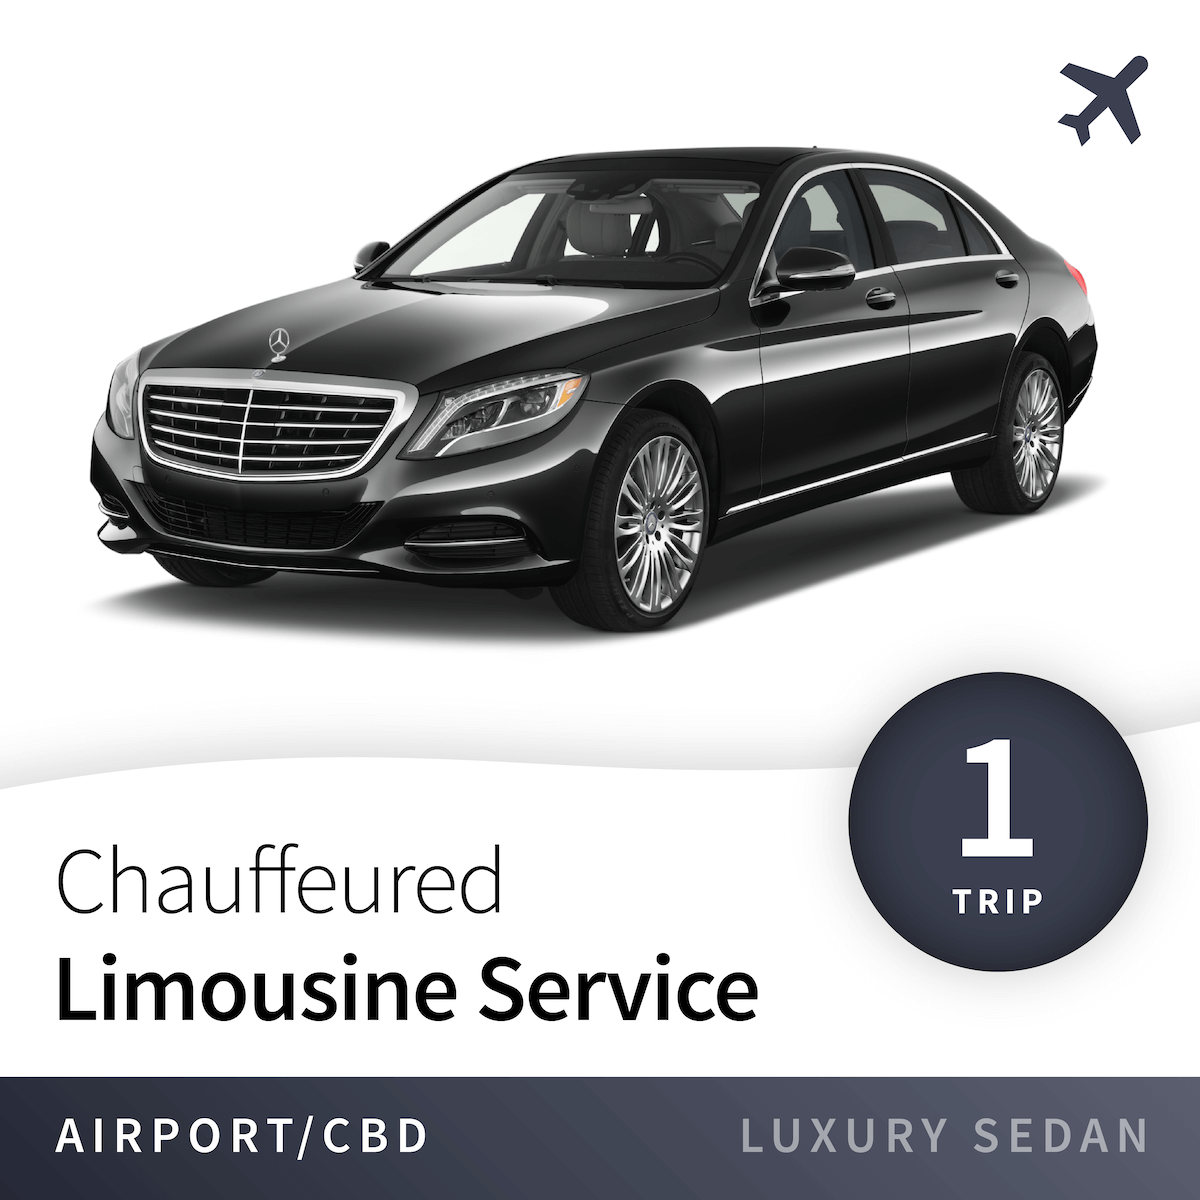 Chauffeured Limousine Service - Airport - Luxury Sedan (1 Trip) 7